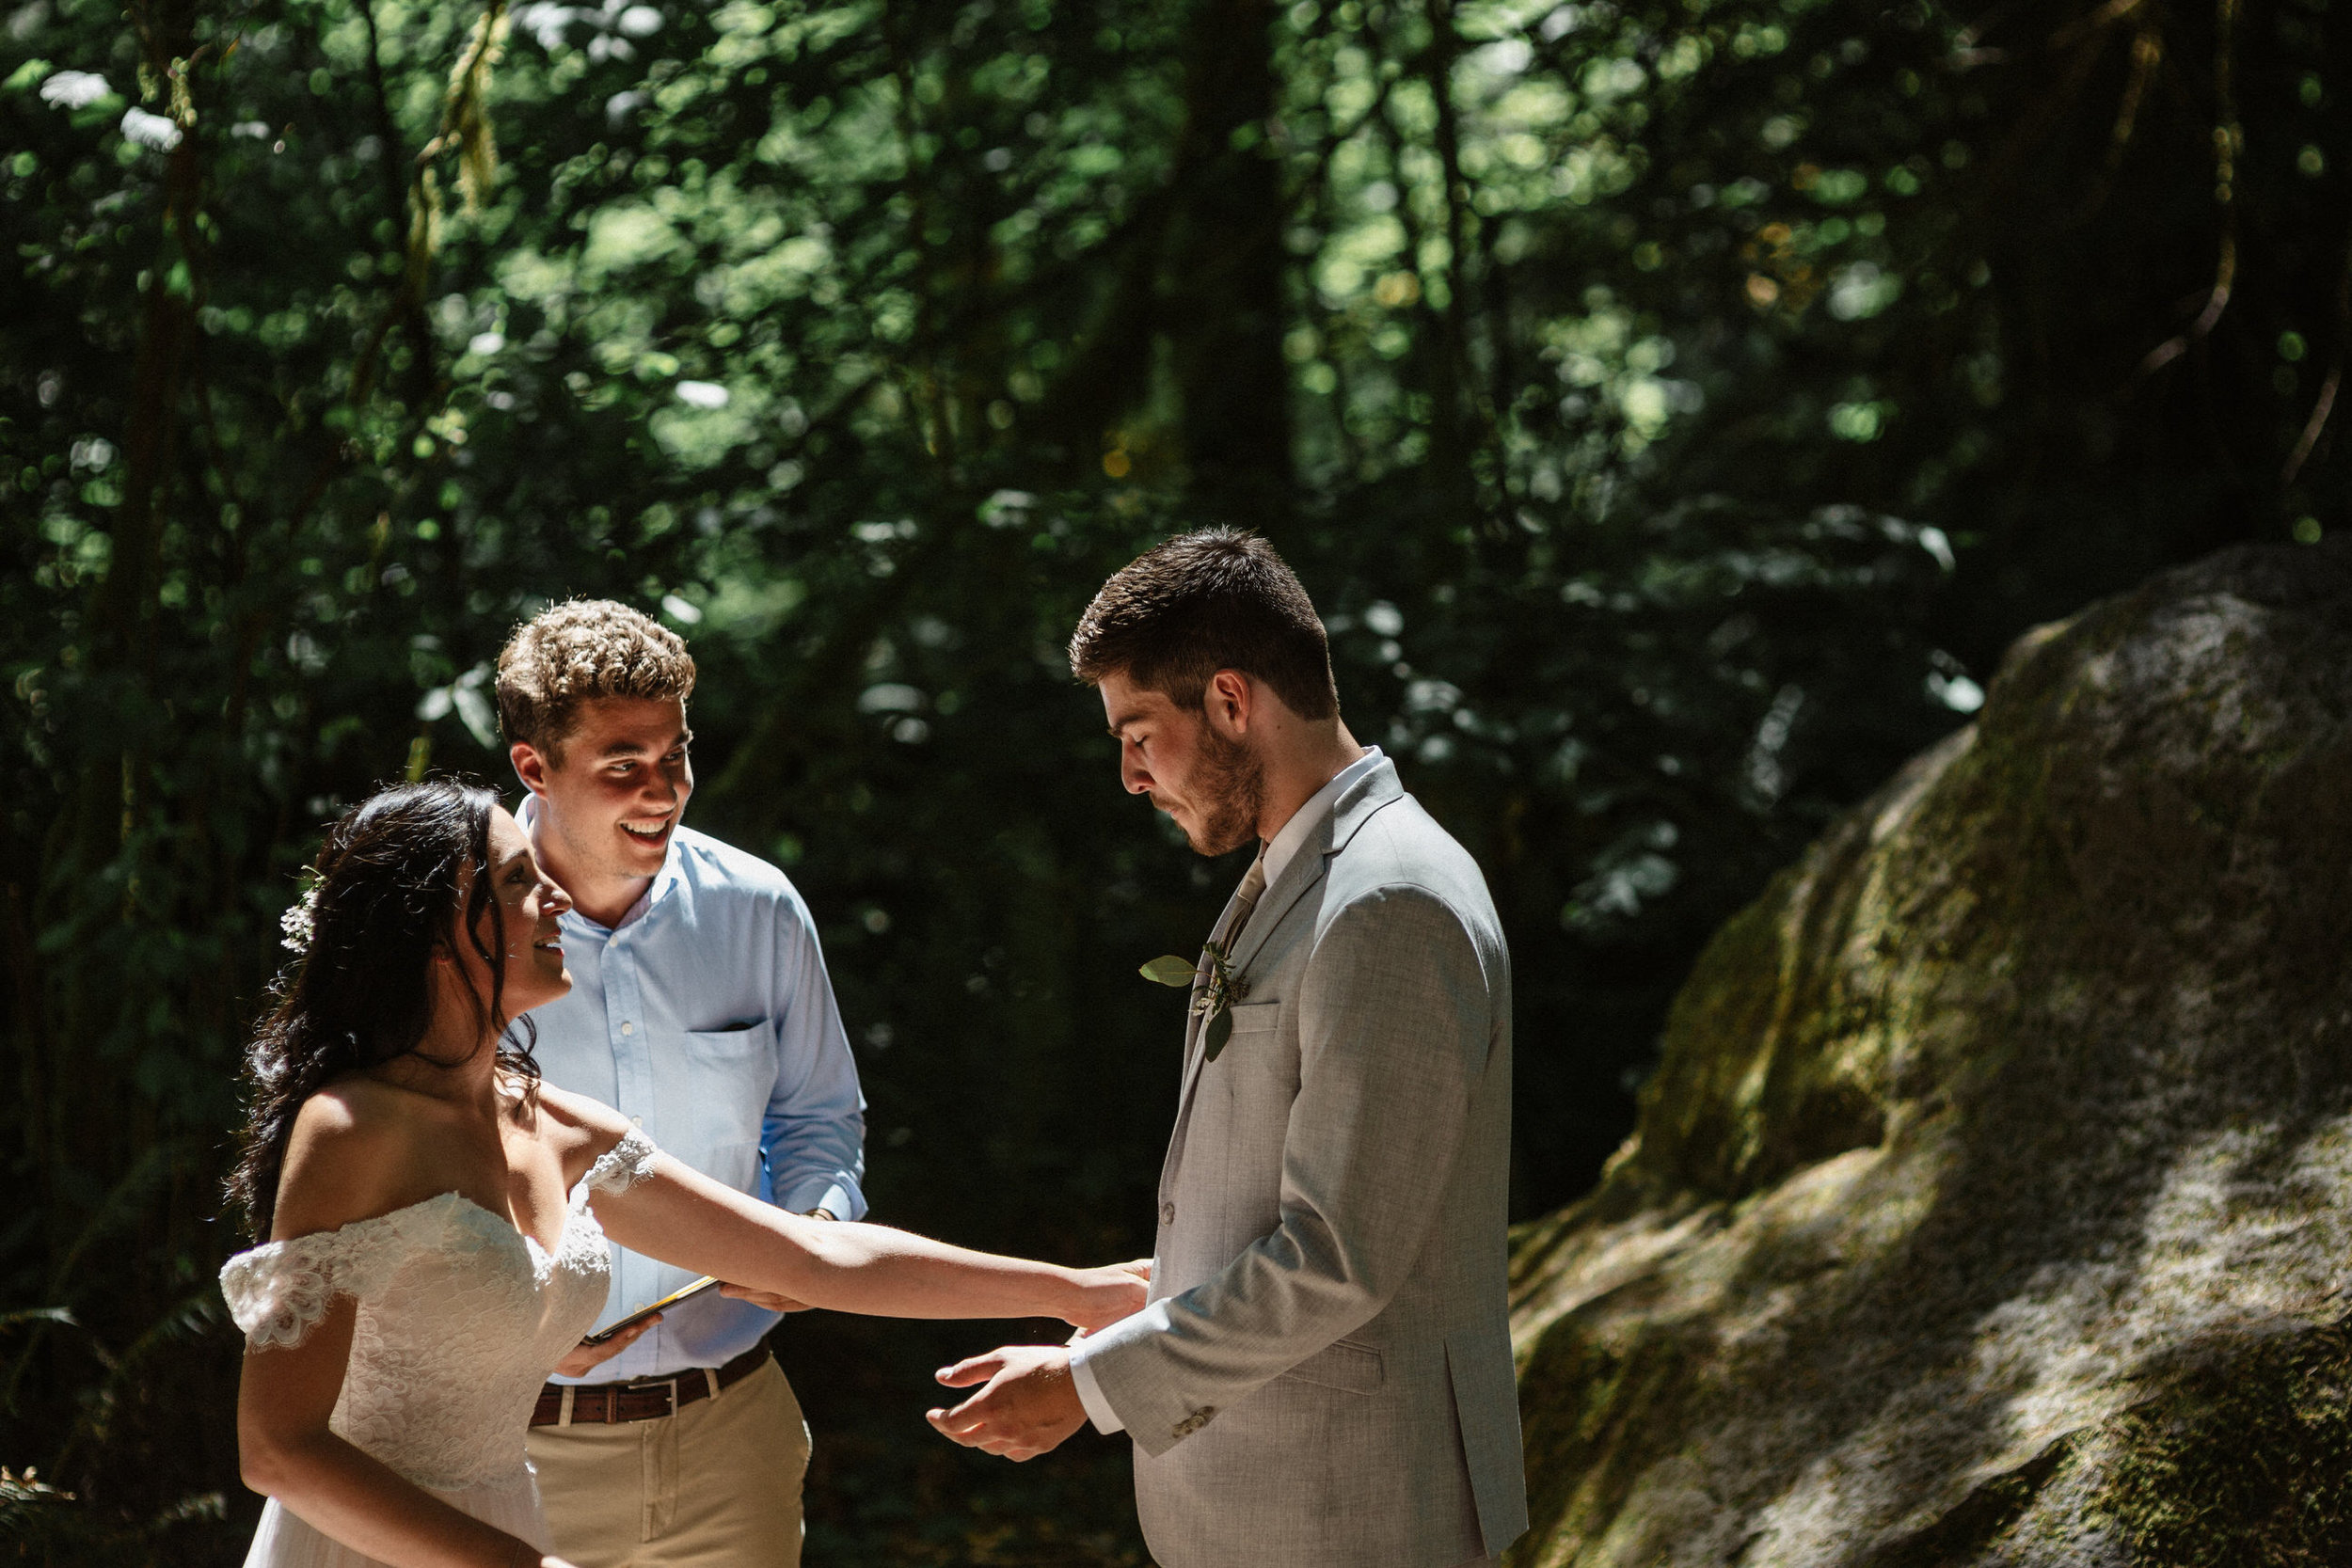 MT Hood Wildwood elopement wedding oregon portland photography0054.JPG